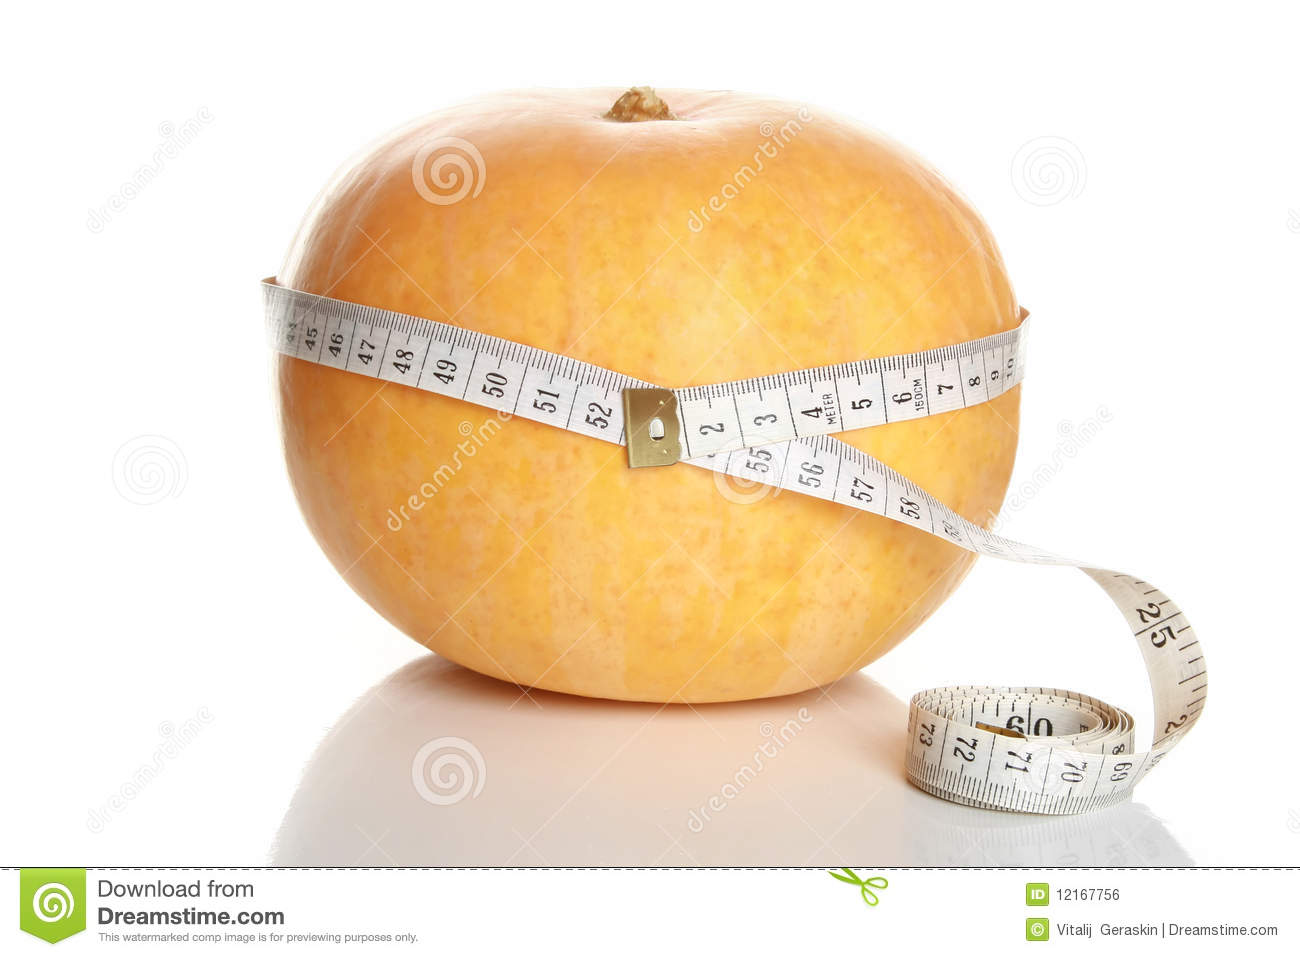 photo To Lose Weight, Eating Less Is More Important Than Exercise